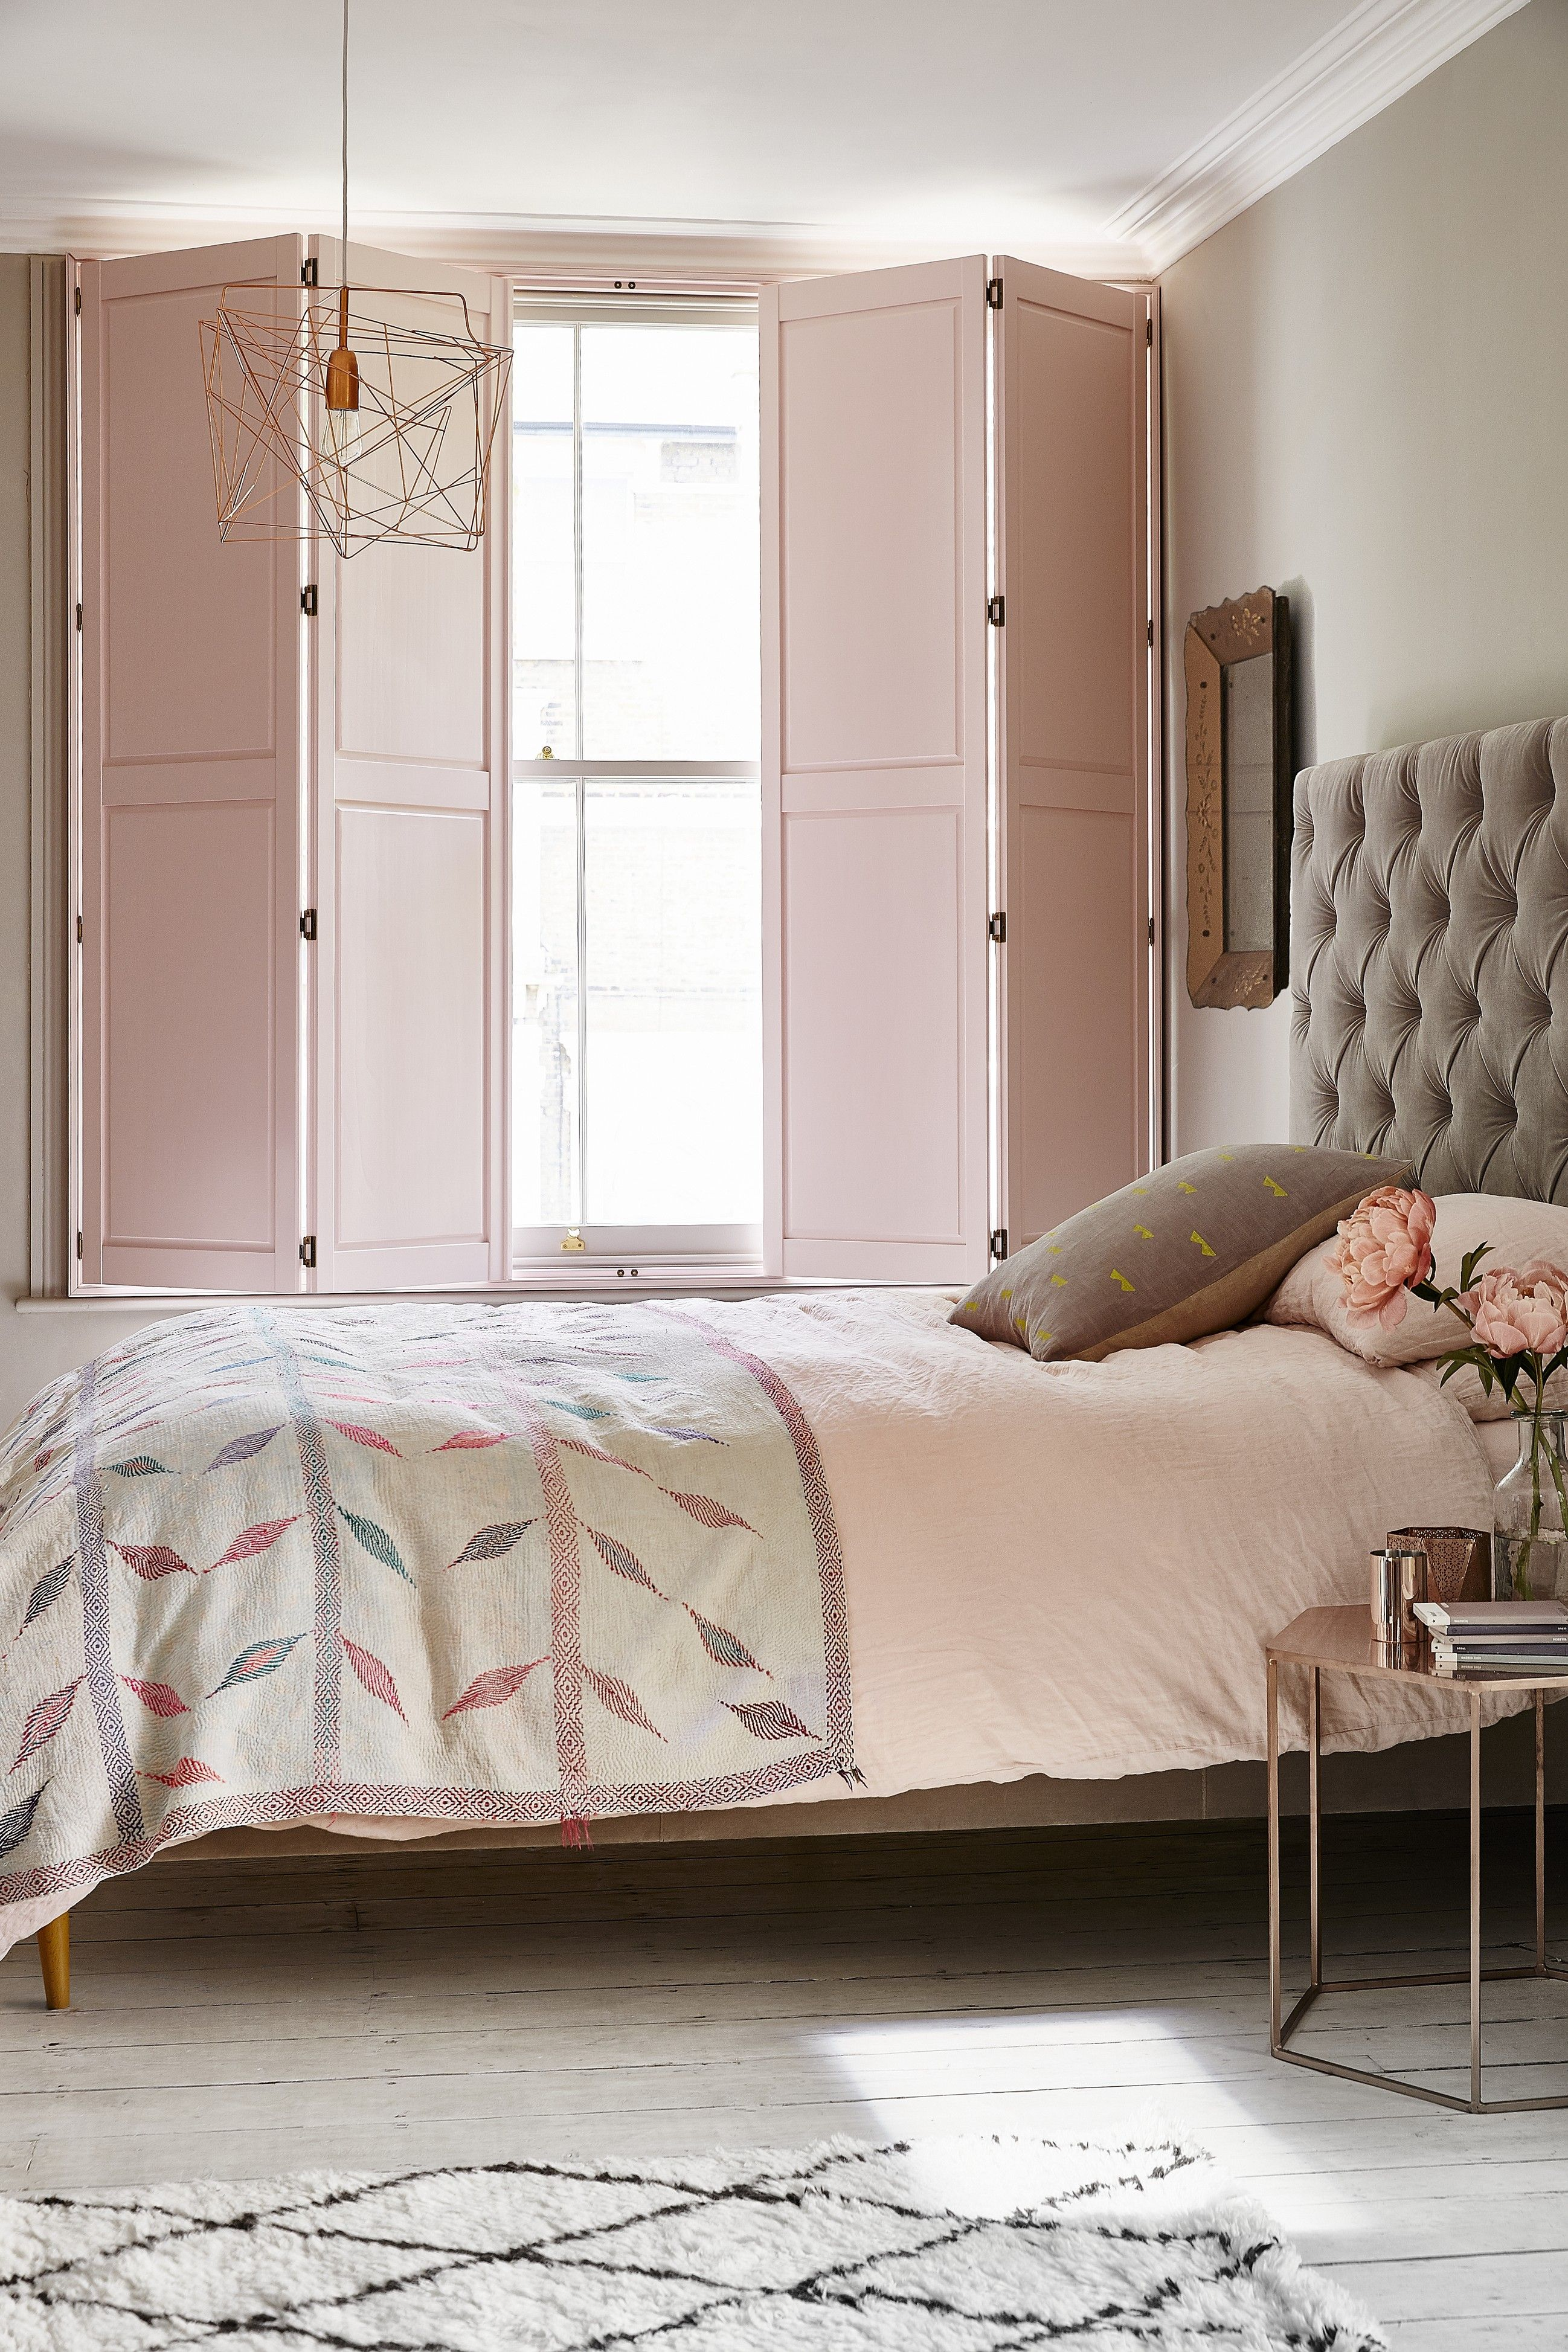 Think Pink With A Dreamy Soft Bedroom Setting Interior Shutters Bedroom Shutters Pastel Interior